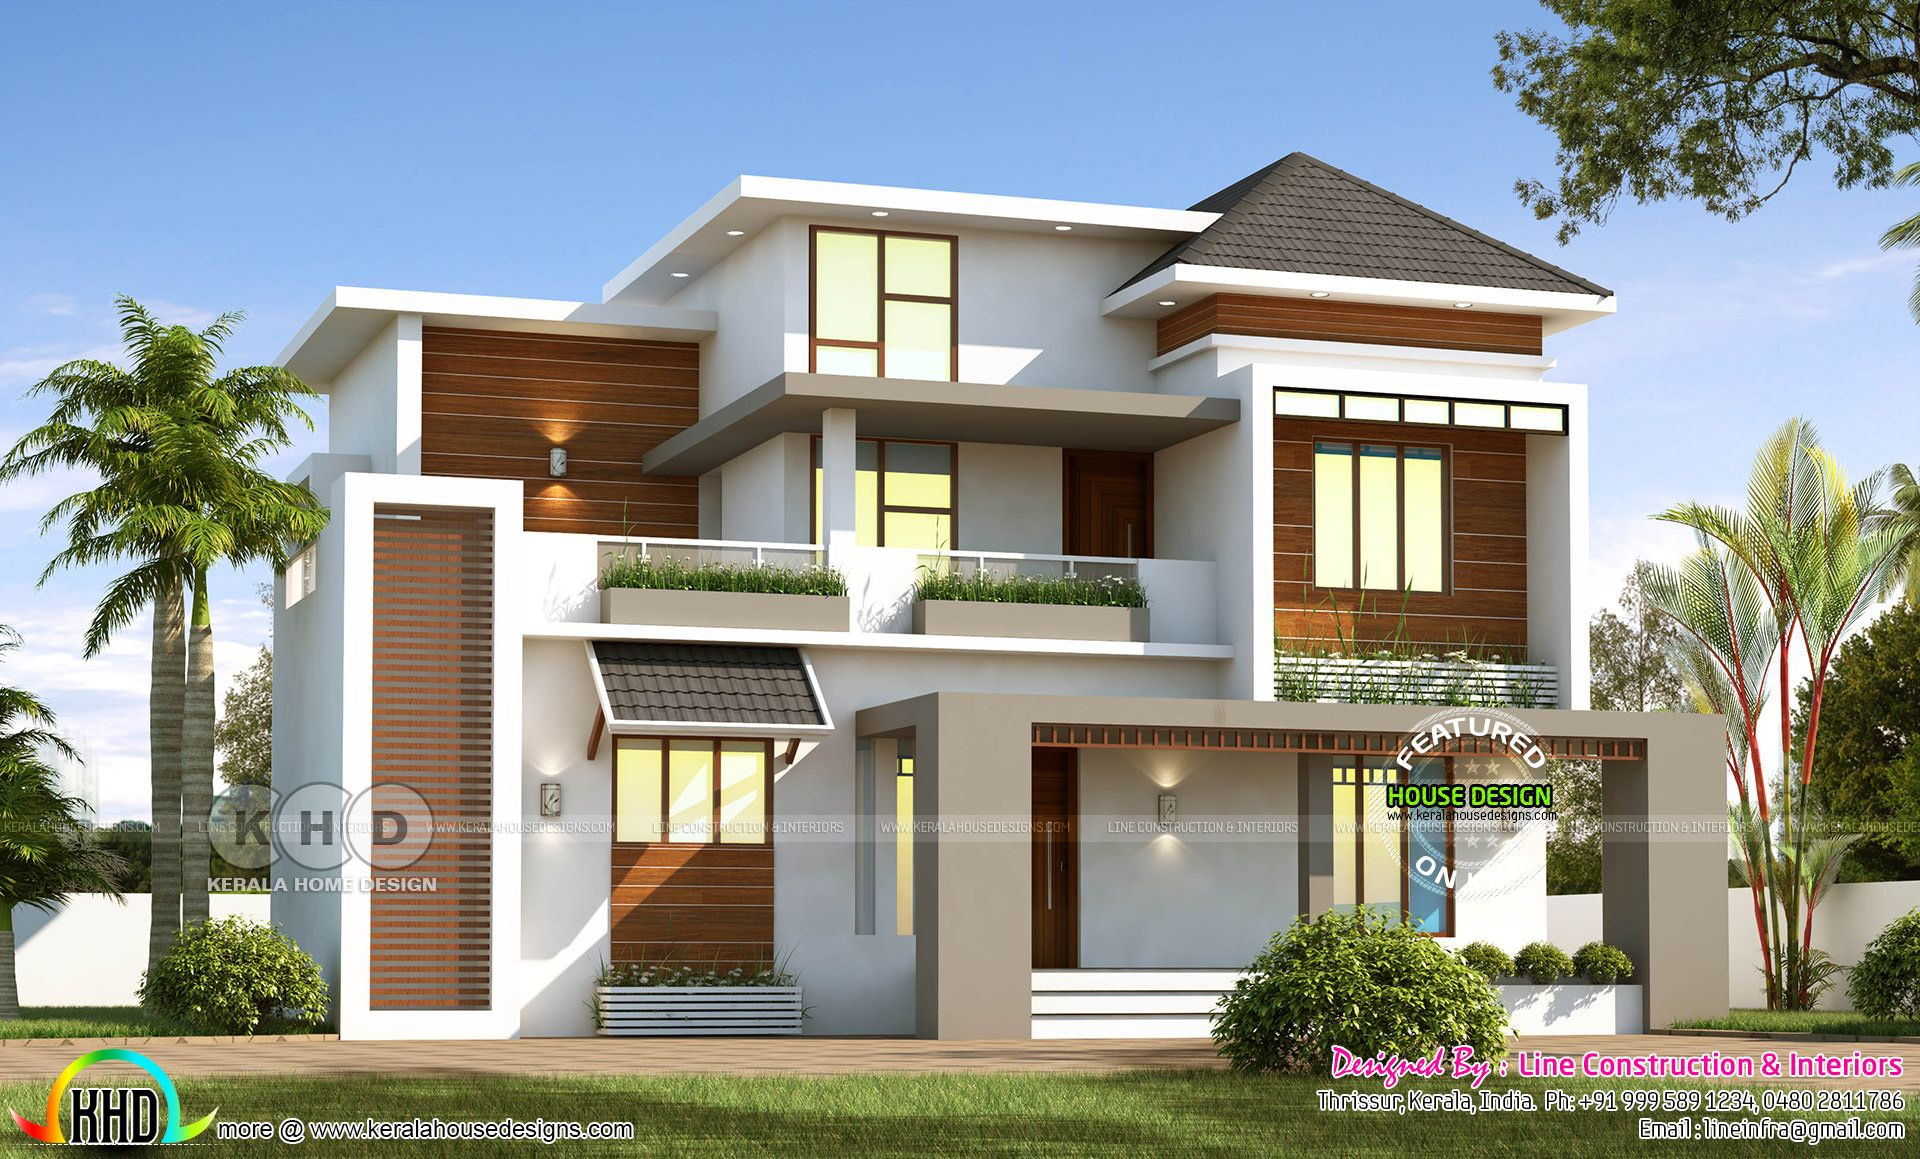 1852 Square Feet 4 Bedroom Beautiful Modern Home Kerala House Design Beautiful Modern Homes Architectural House Plans